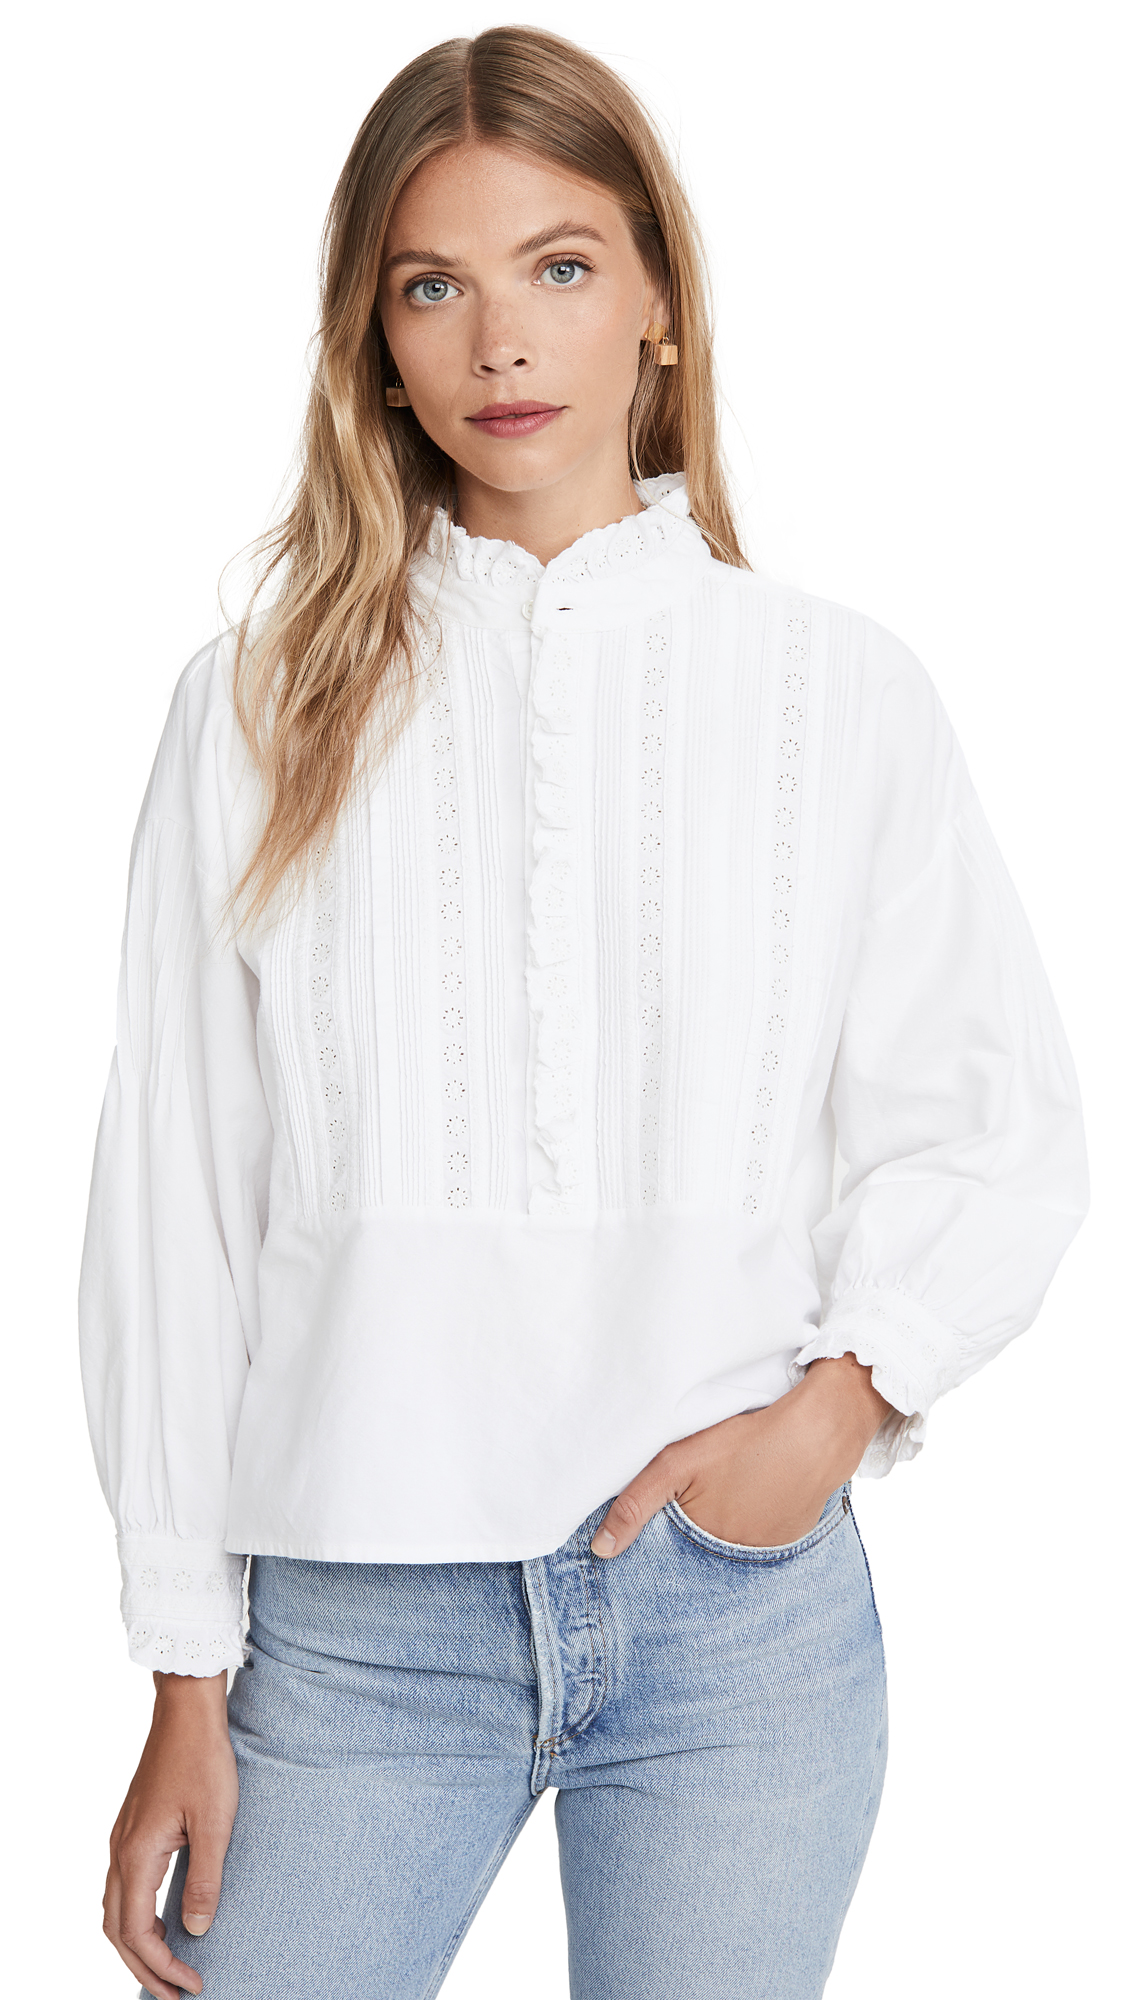 THE GREAT. The Victorian Tuxedo Top - 30% Off Sale